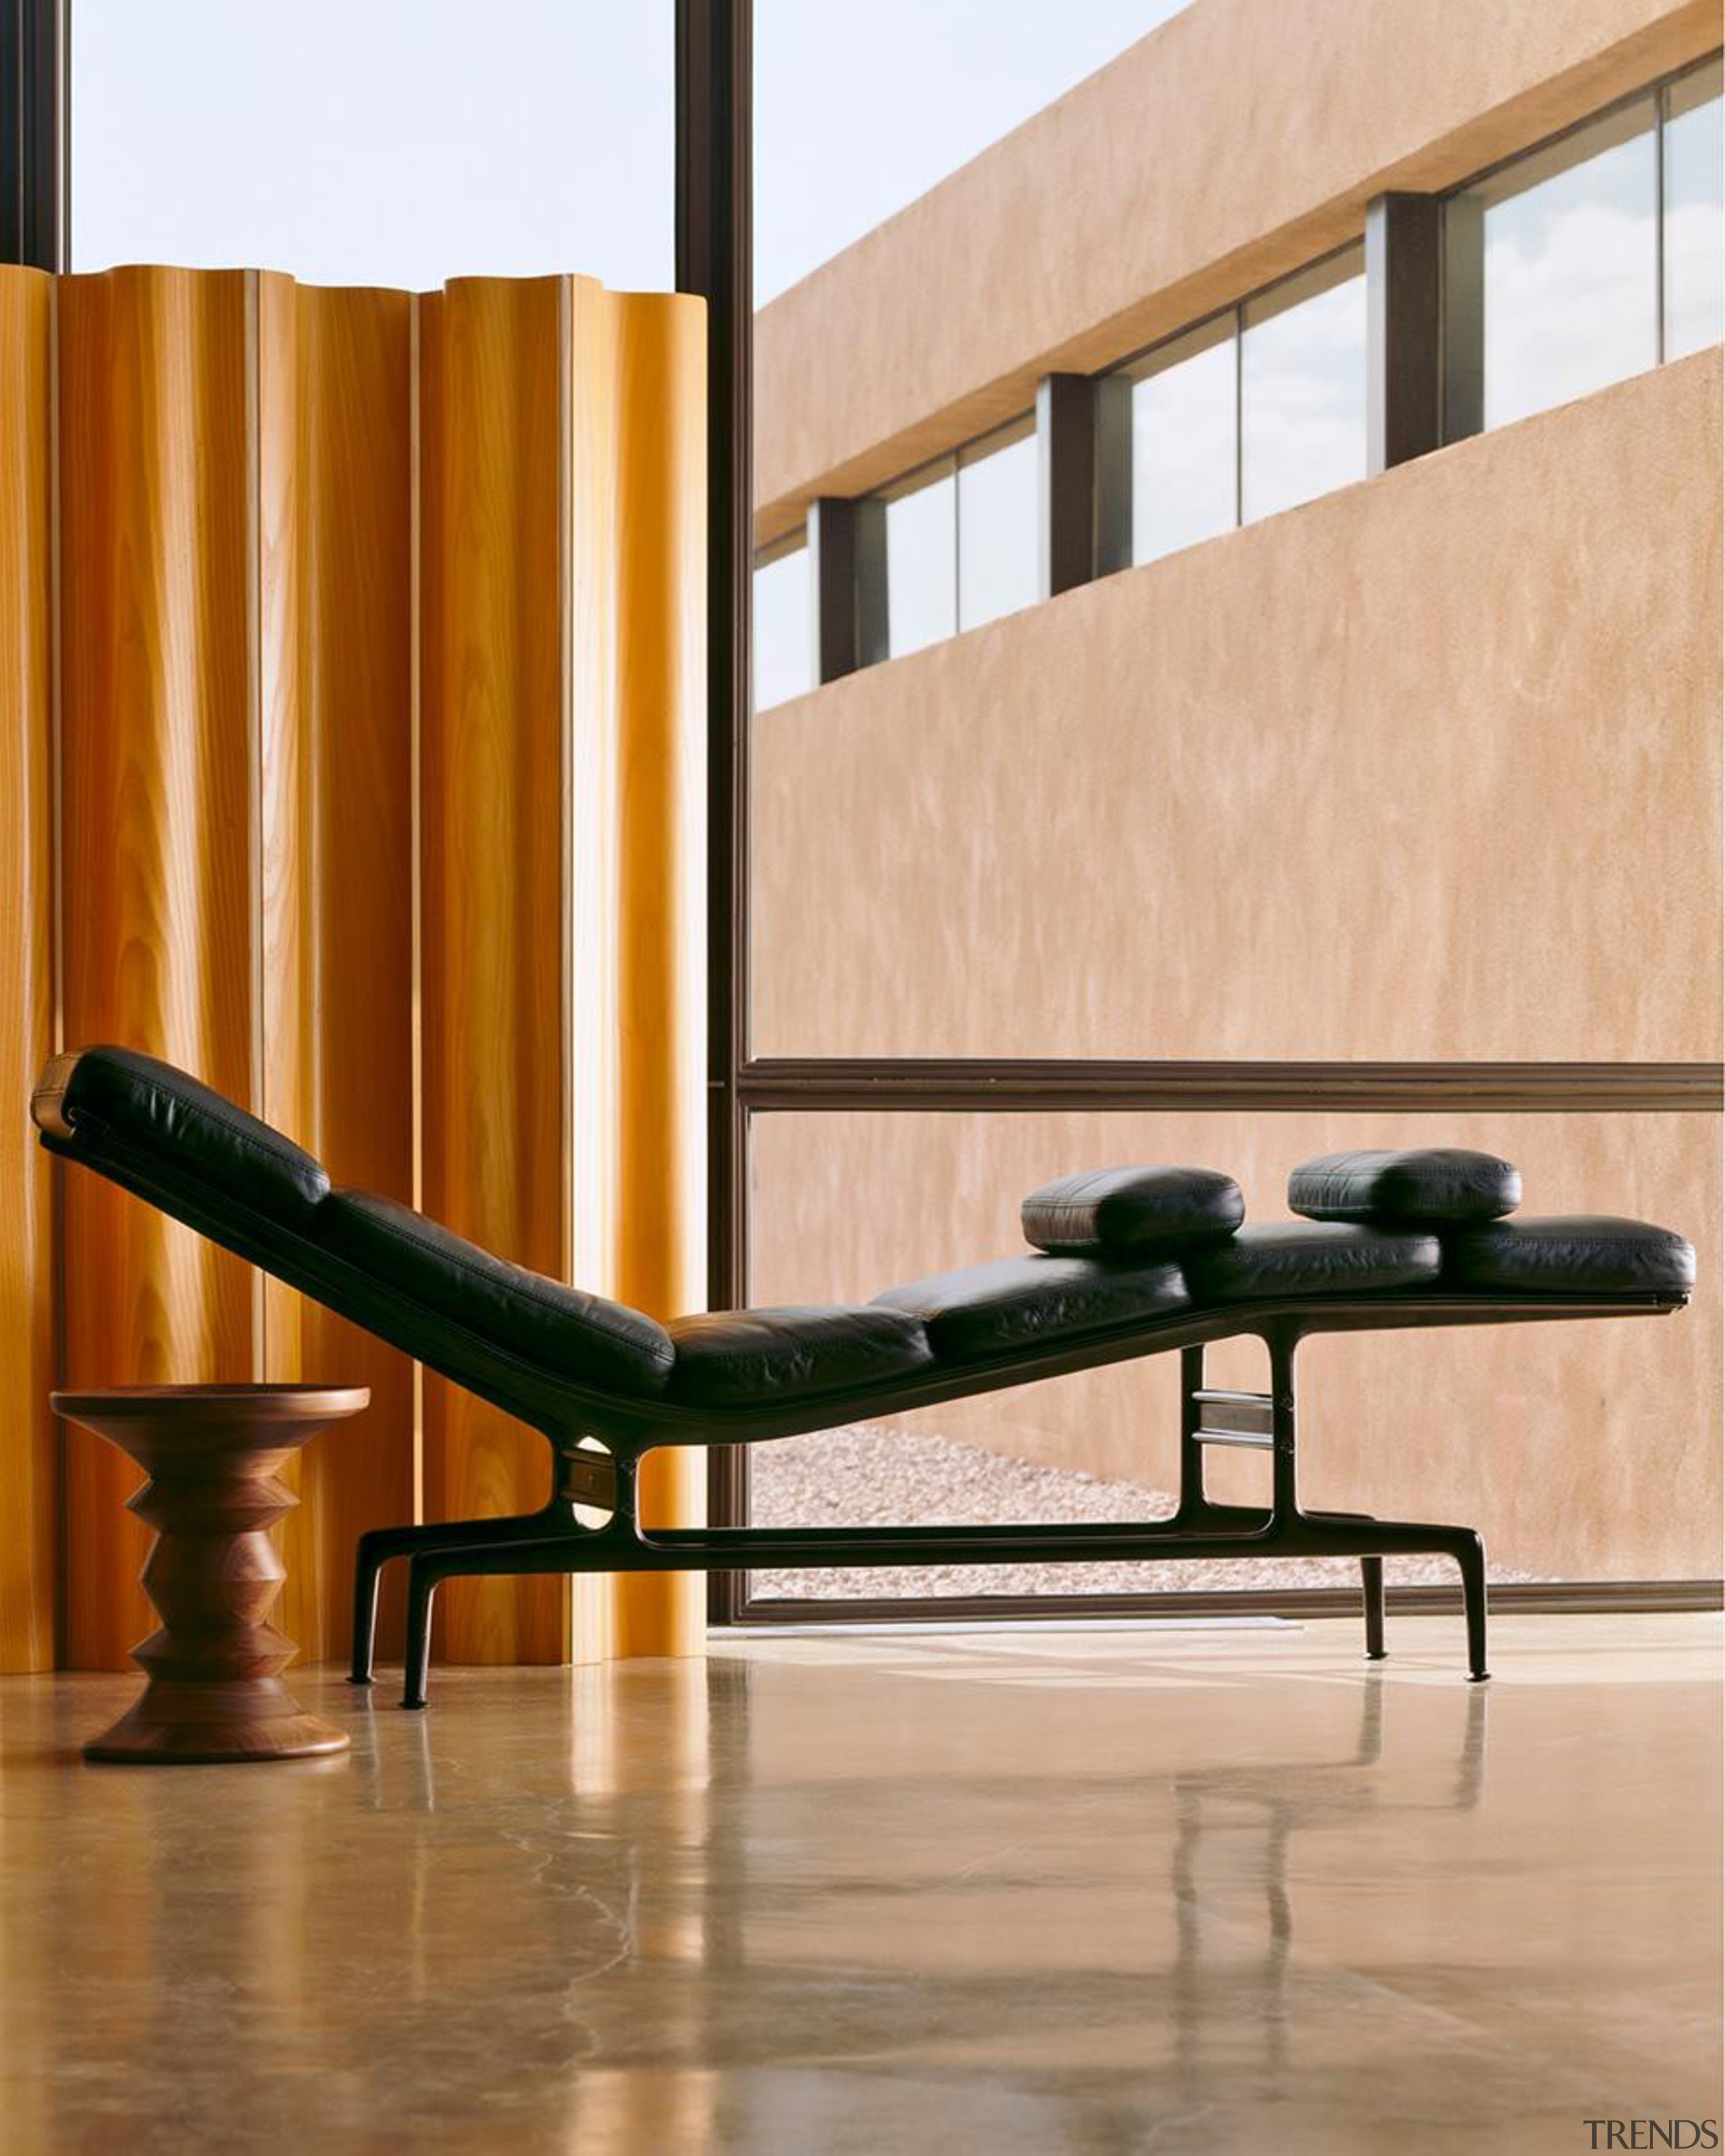 Eames chaise longue by Charles and Ray Eames furniture, interior design, outdoor furniture, product design, table, orange, brown